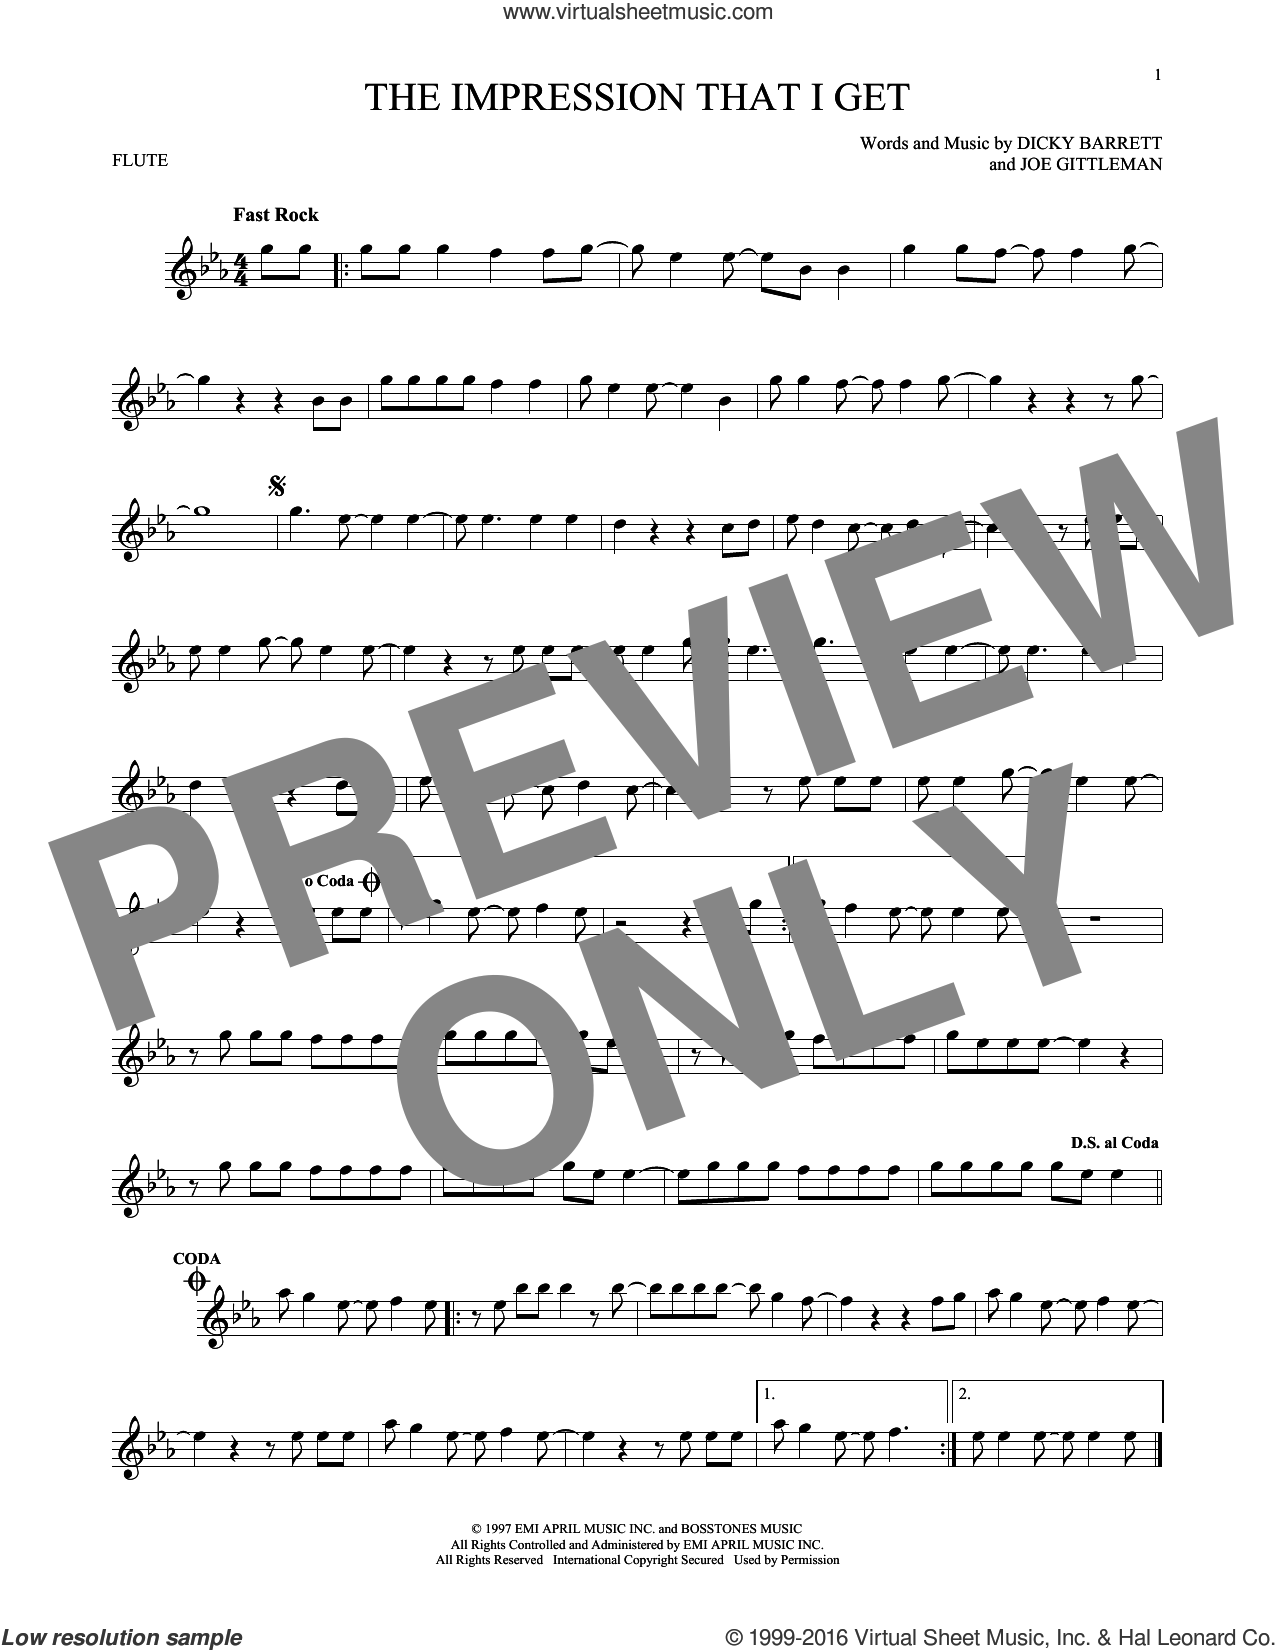 The Impression That I Get sheet music for flute solo by The Mighty Mighty Bosstones, Dicky Barrett and Joe Gittleman, intermediate skill level